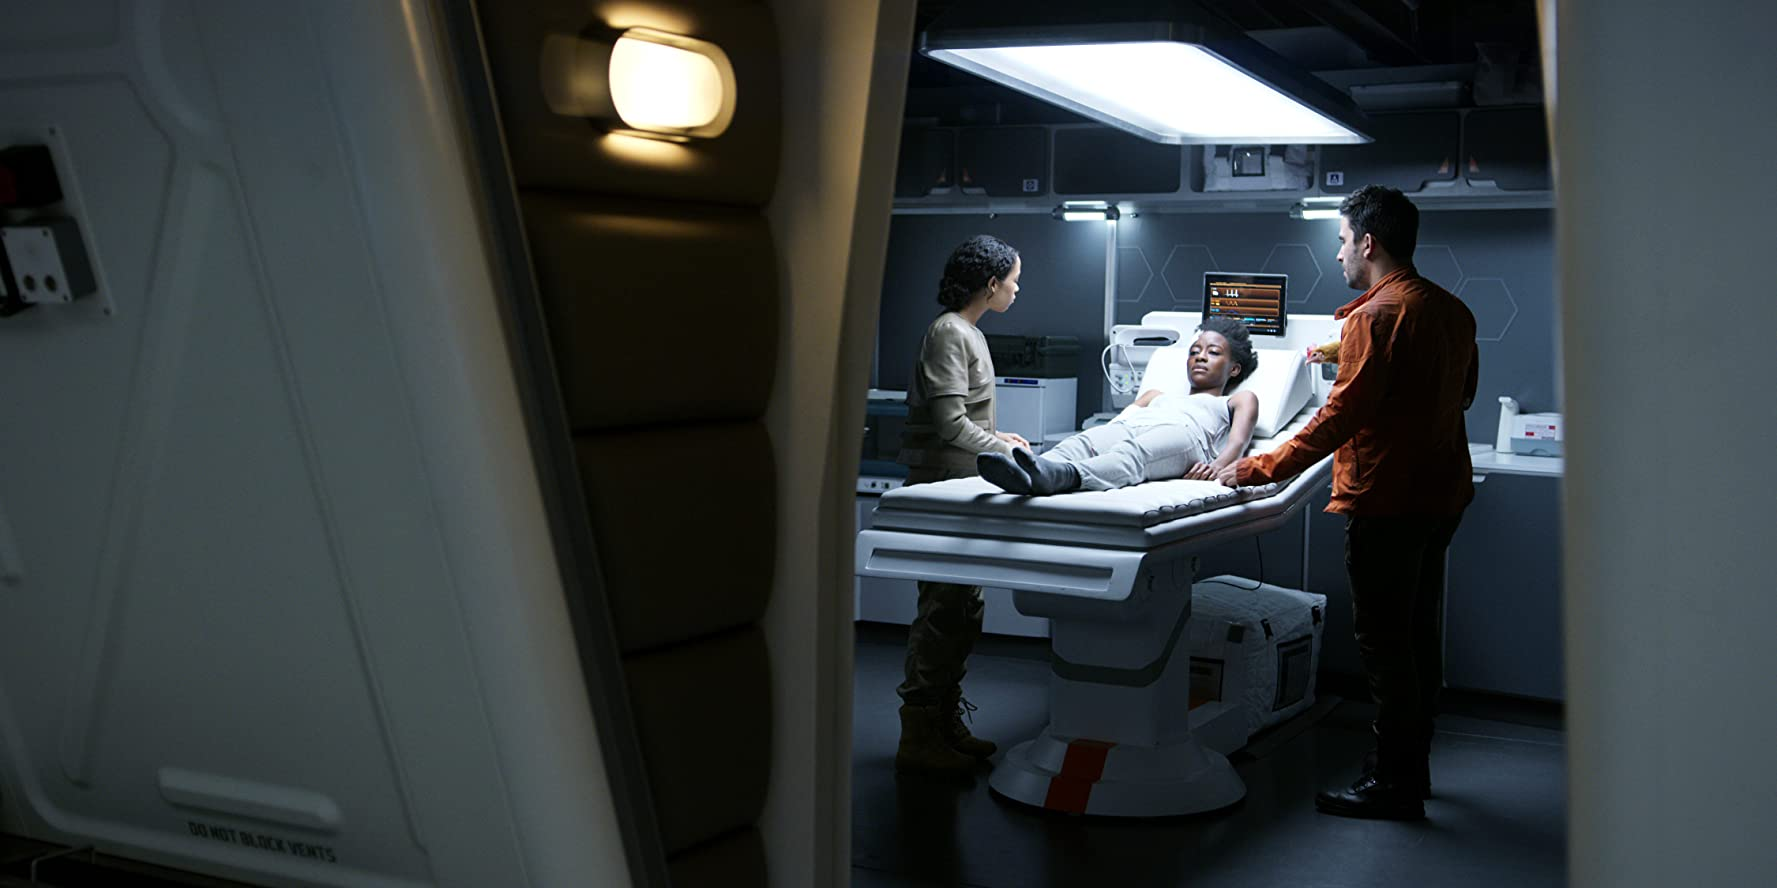 Ignacio Serricchio, Sibongile Mlambo, and Taylor Russell in Lost in Space (2018)